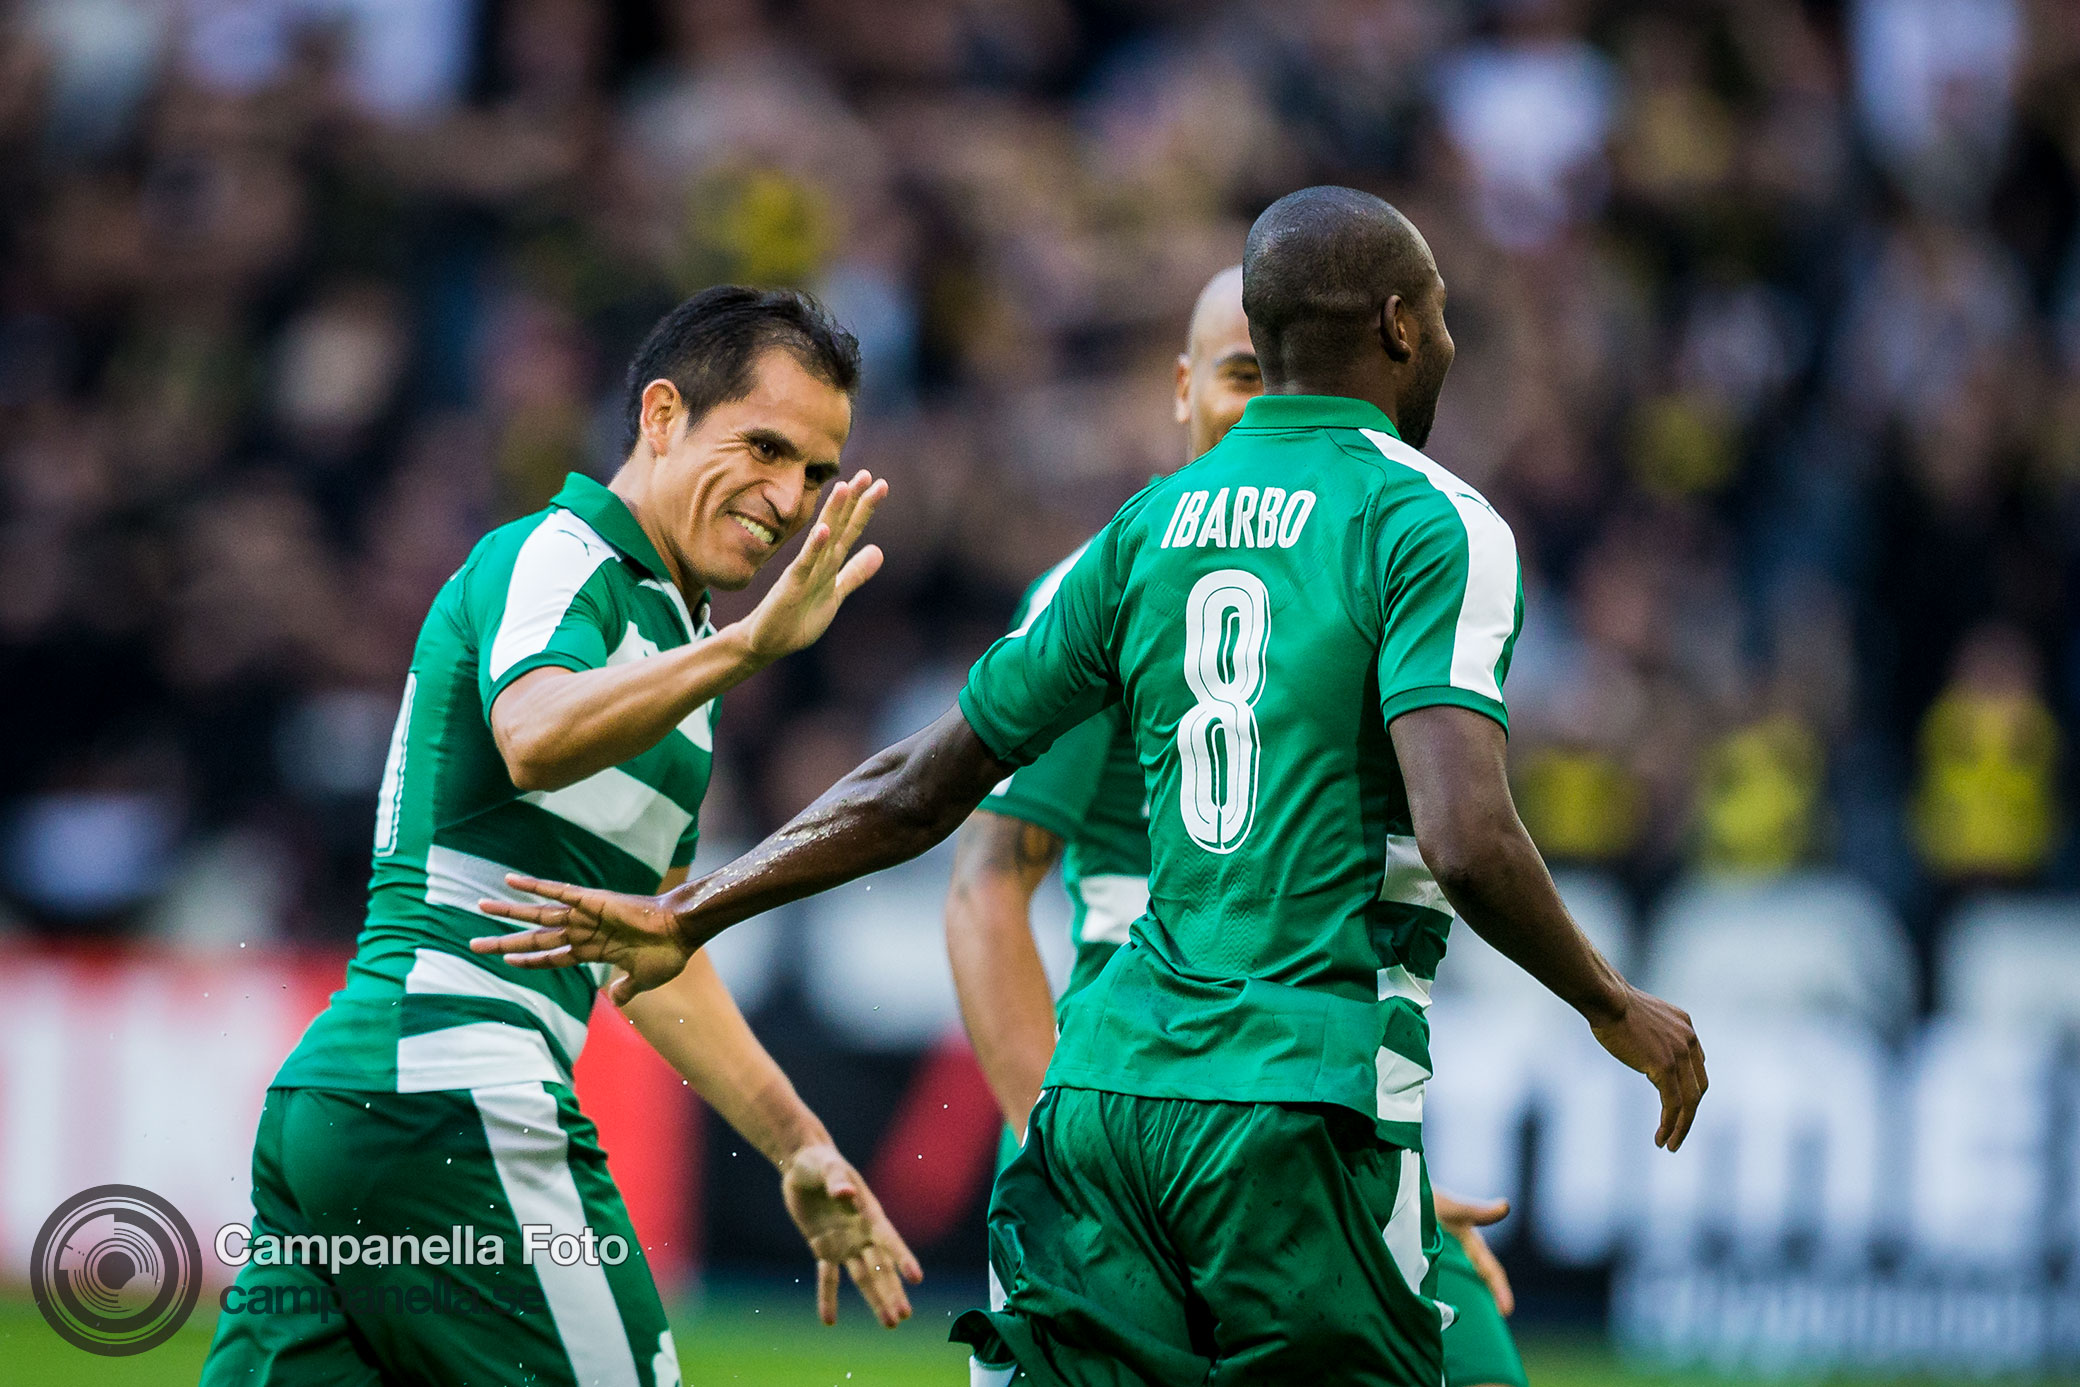 Panathinaikos end AIK's European dreams - Michael Campanella Photography